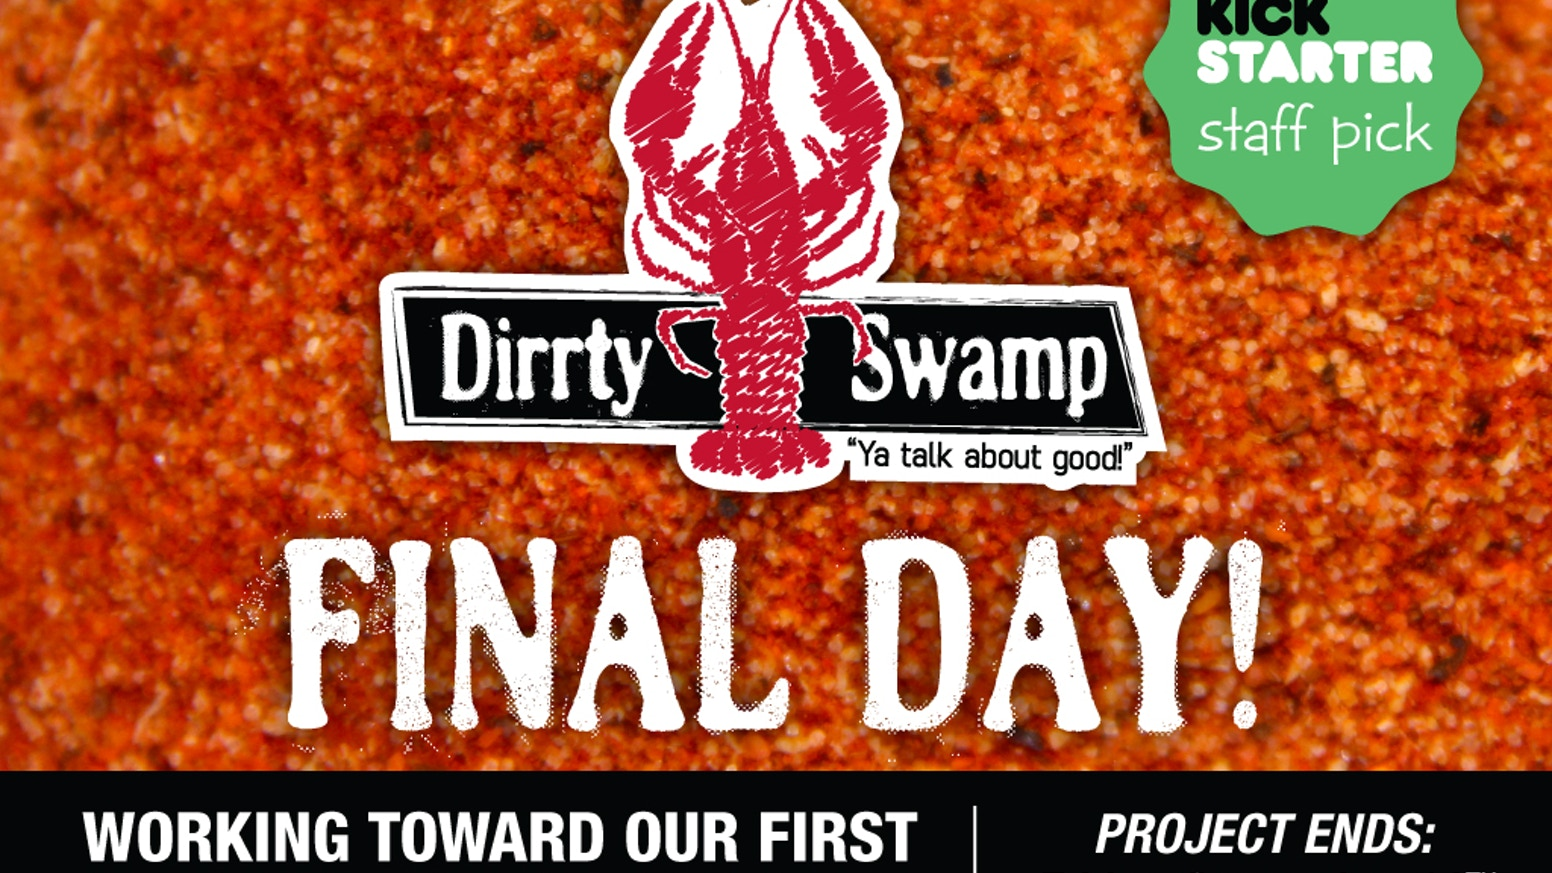 Dirrty Swamp creates genuine Creole seasonings & foods with the perfect balance of heat and flavor.